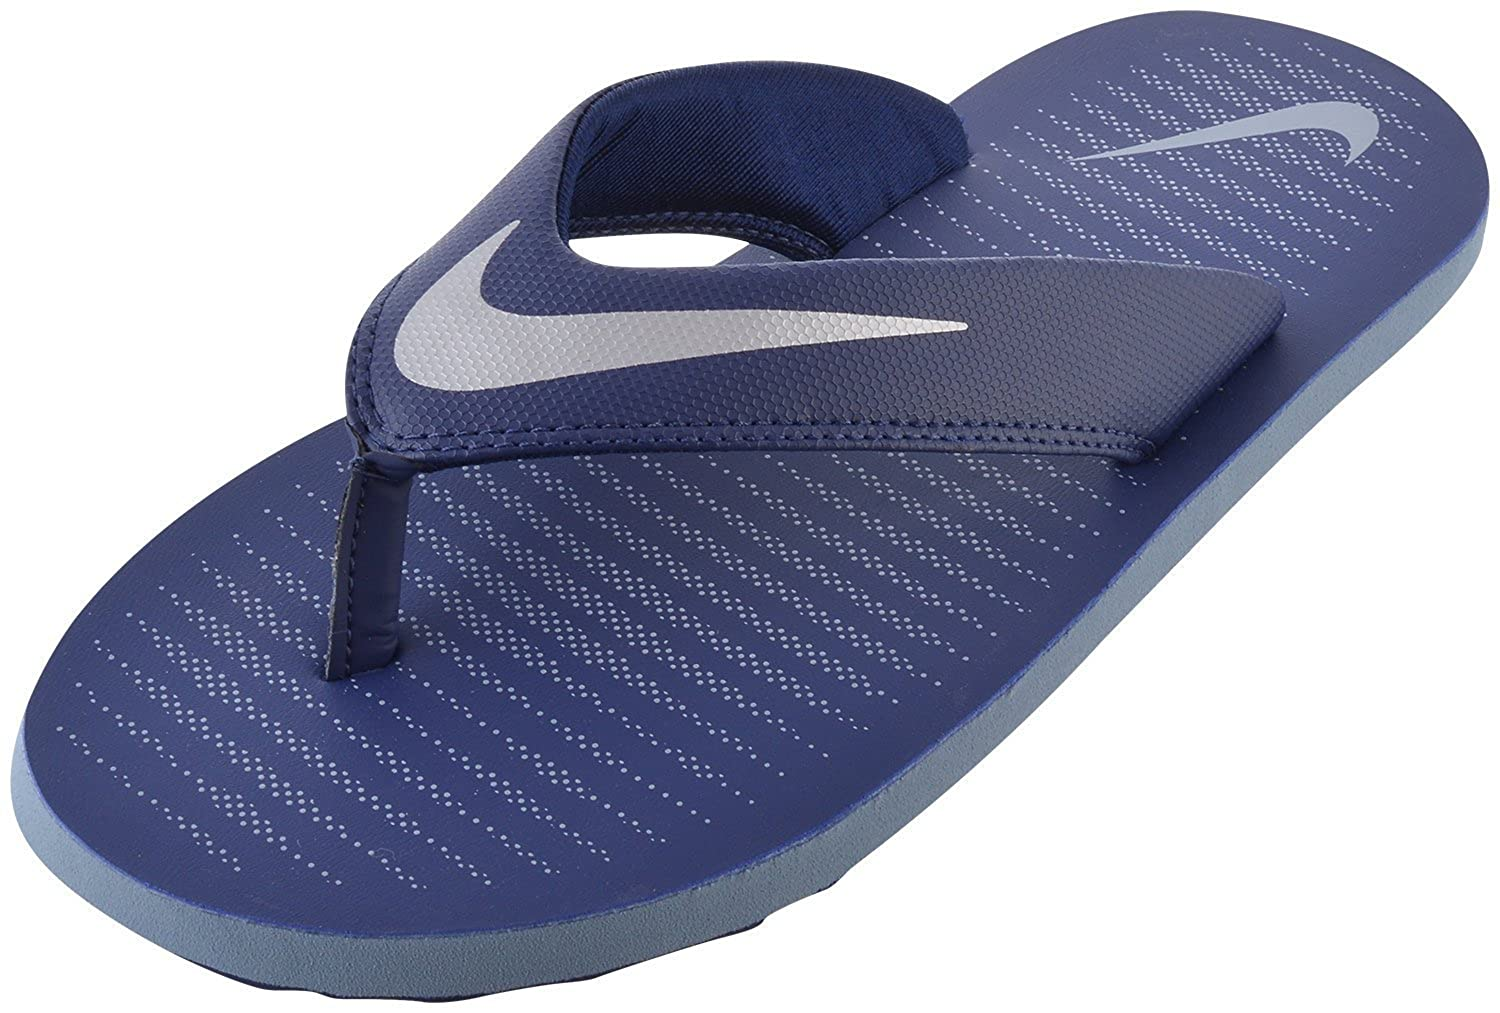 dd4f61291d38 Nike Men s Chroma Thong 5 Flip Flops  Buy Online at Low Prices in India -  Amazon.in